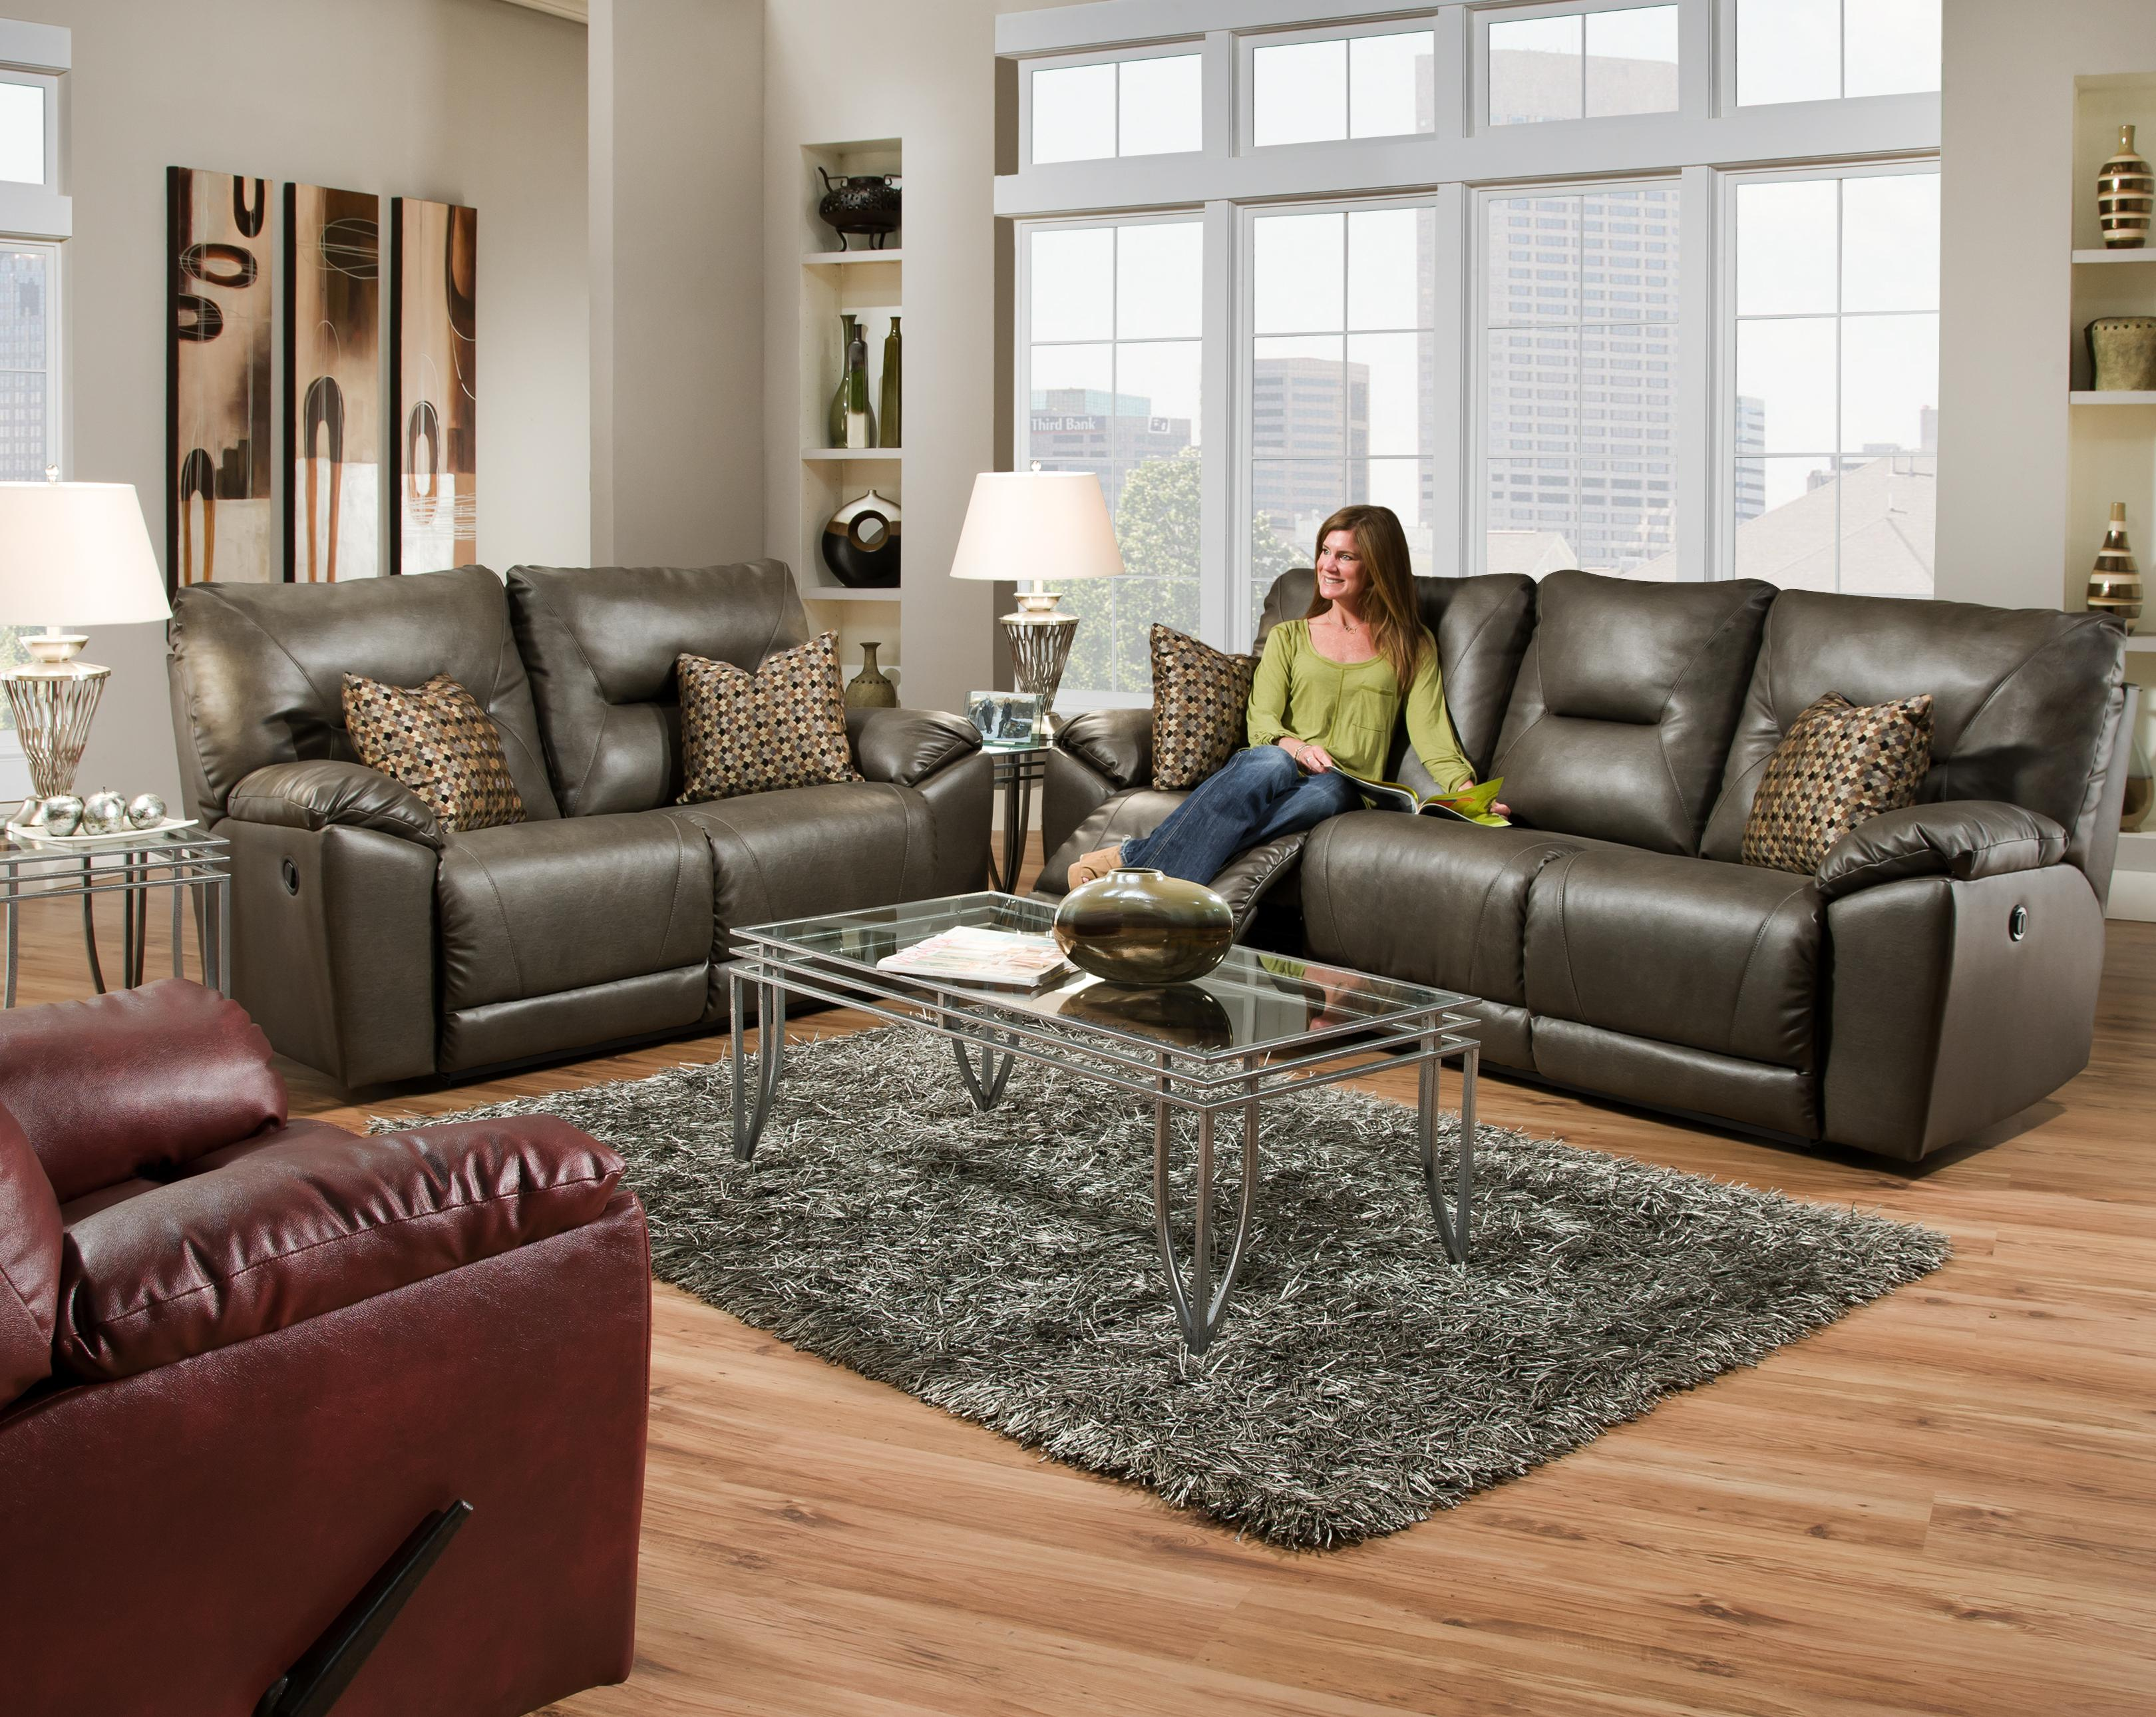 set ideas loveseat design best print awesome floral patterned grousedays couch of sofa sofas luxury